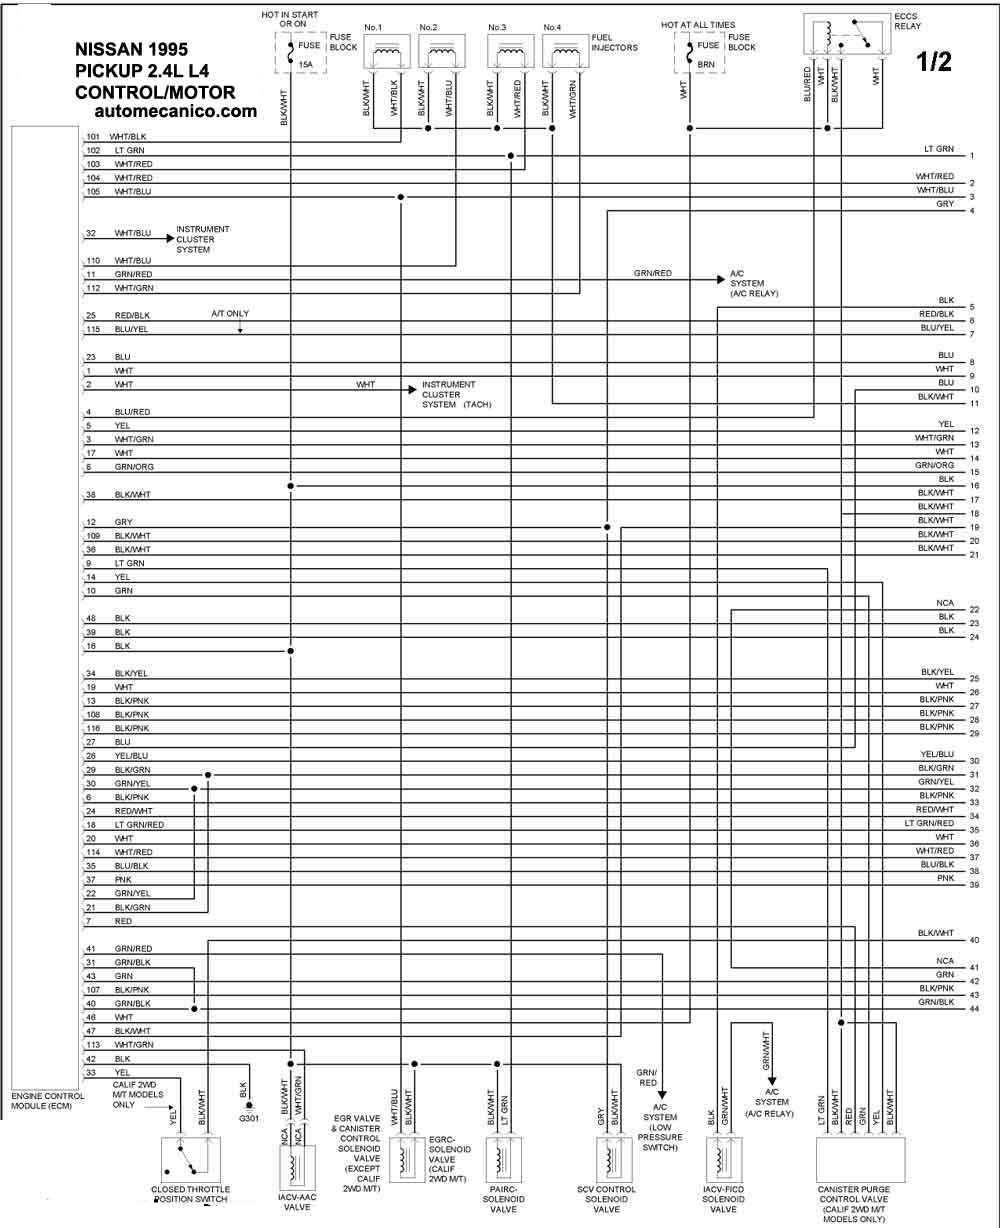 1995 Nissan Pick Up Wiring Diagram Nissan 1995 Diagramas Control Del Motor Graphics